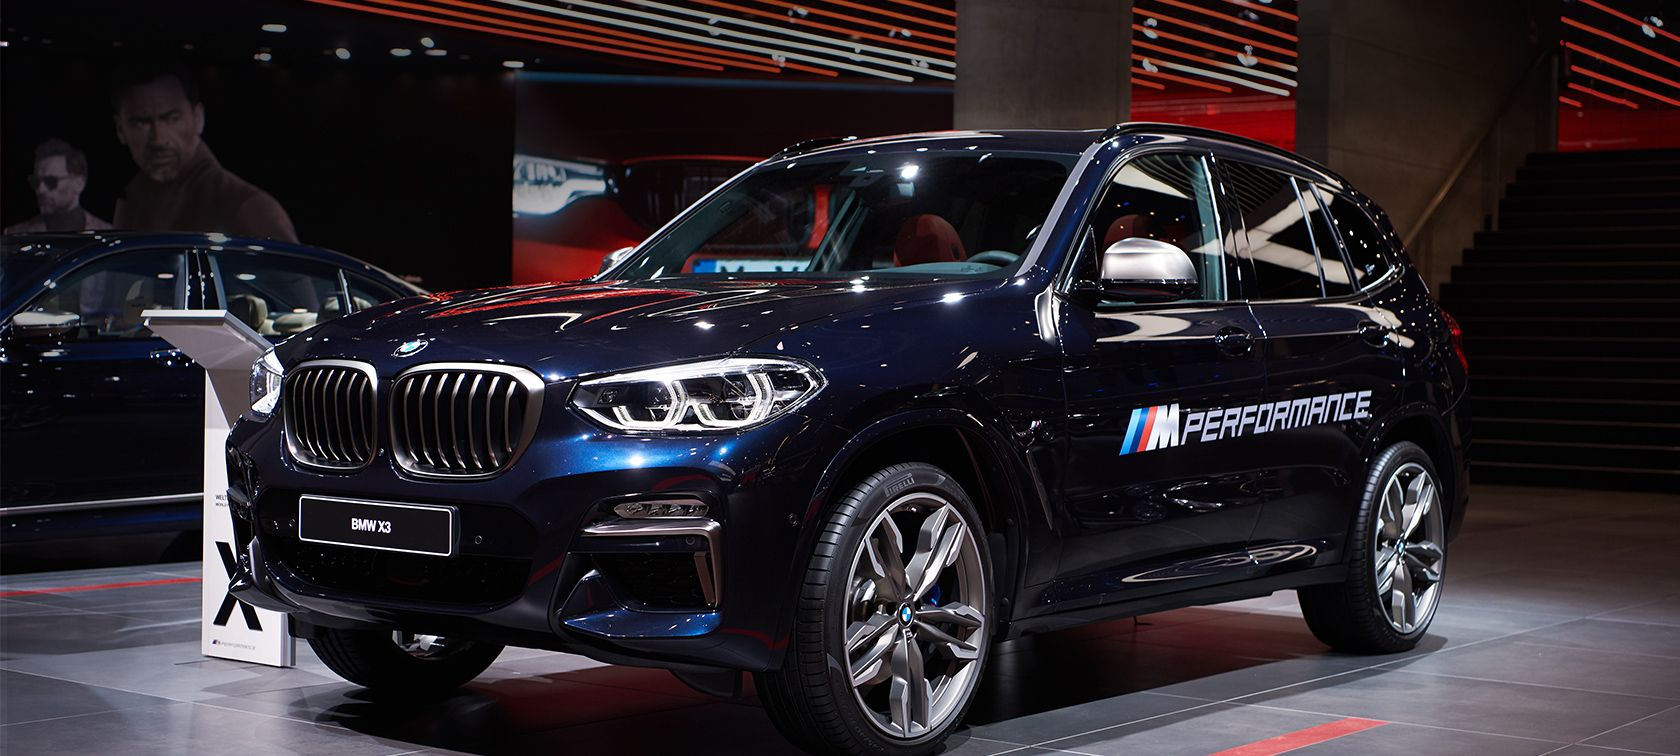 bmw 3 series the bmw x3 bmw car pictures all types all models. Black Bedroom Furniture Sets. Home Design Ideas